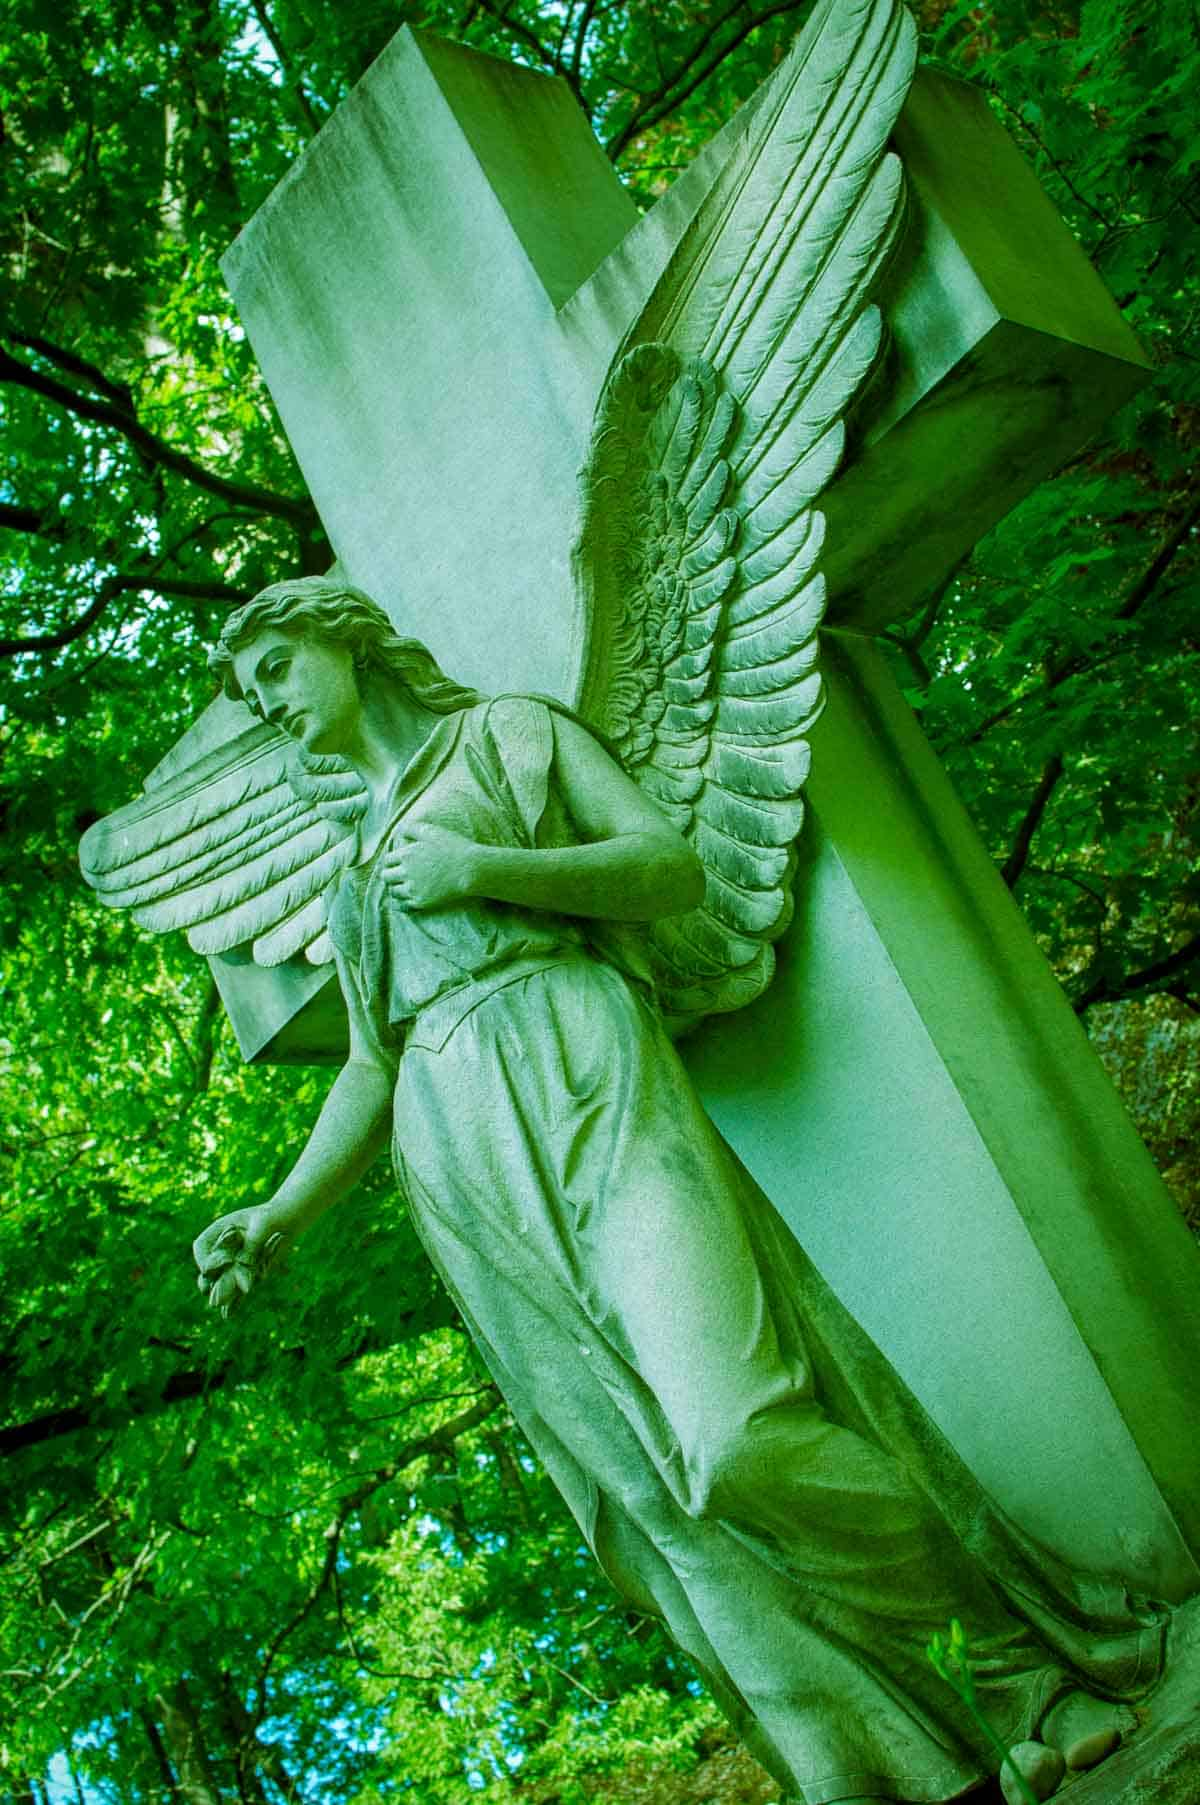 Cement cross and angel statue in a forest